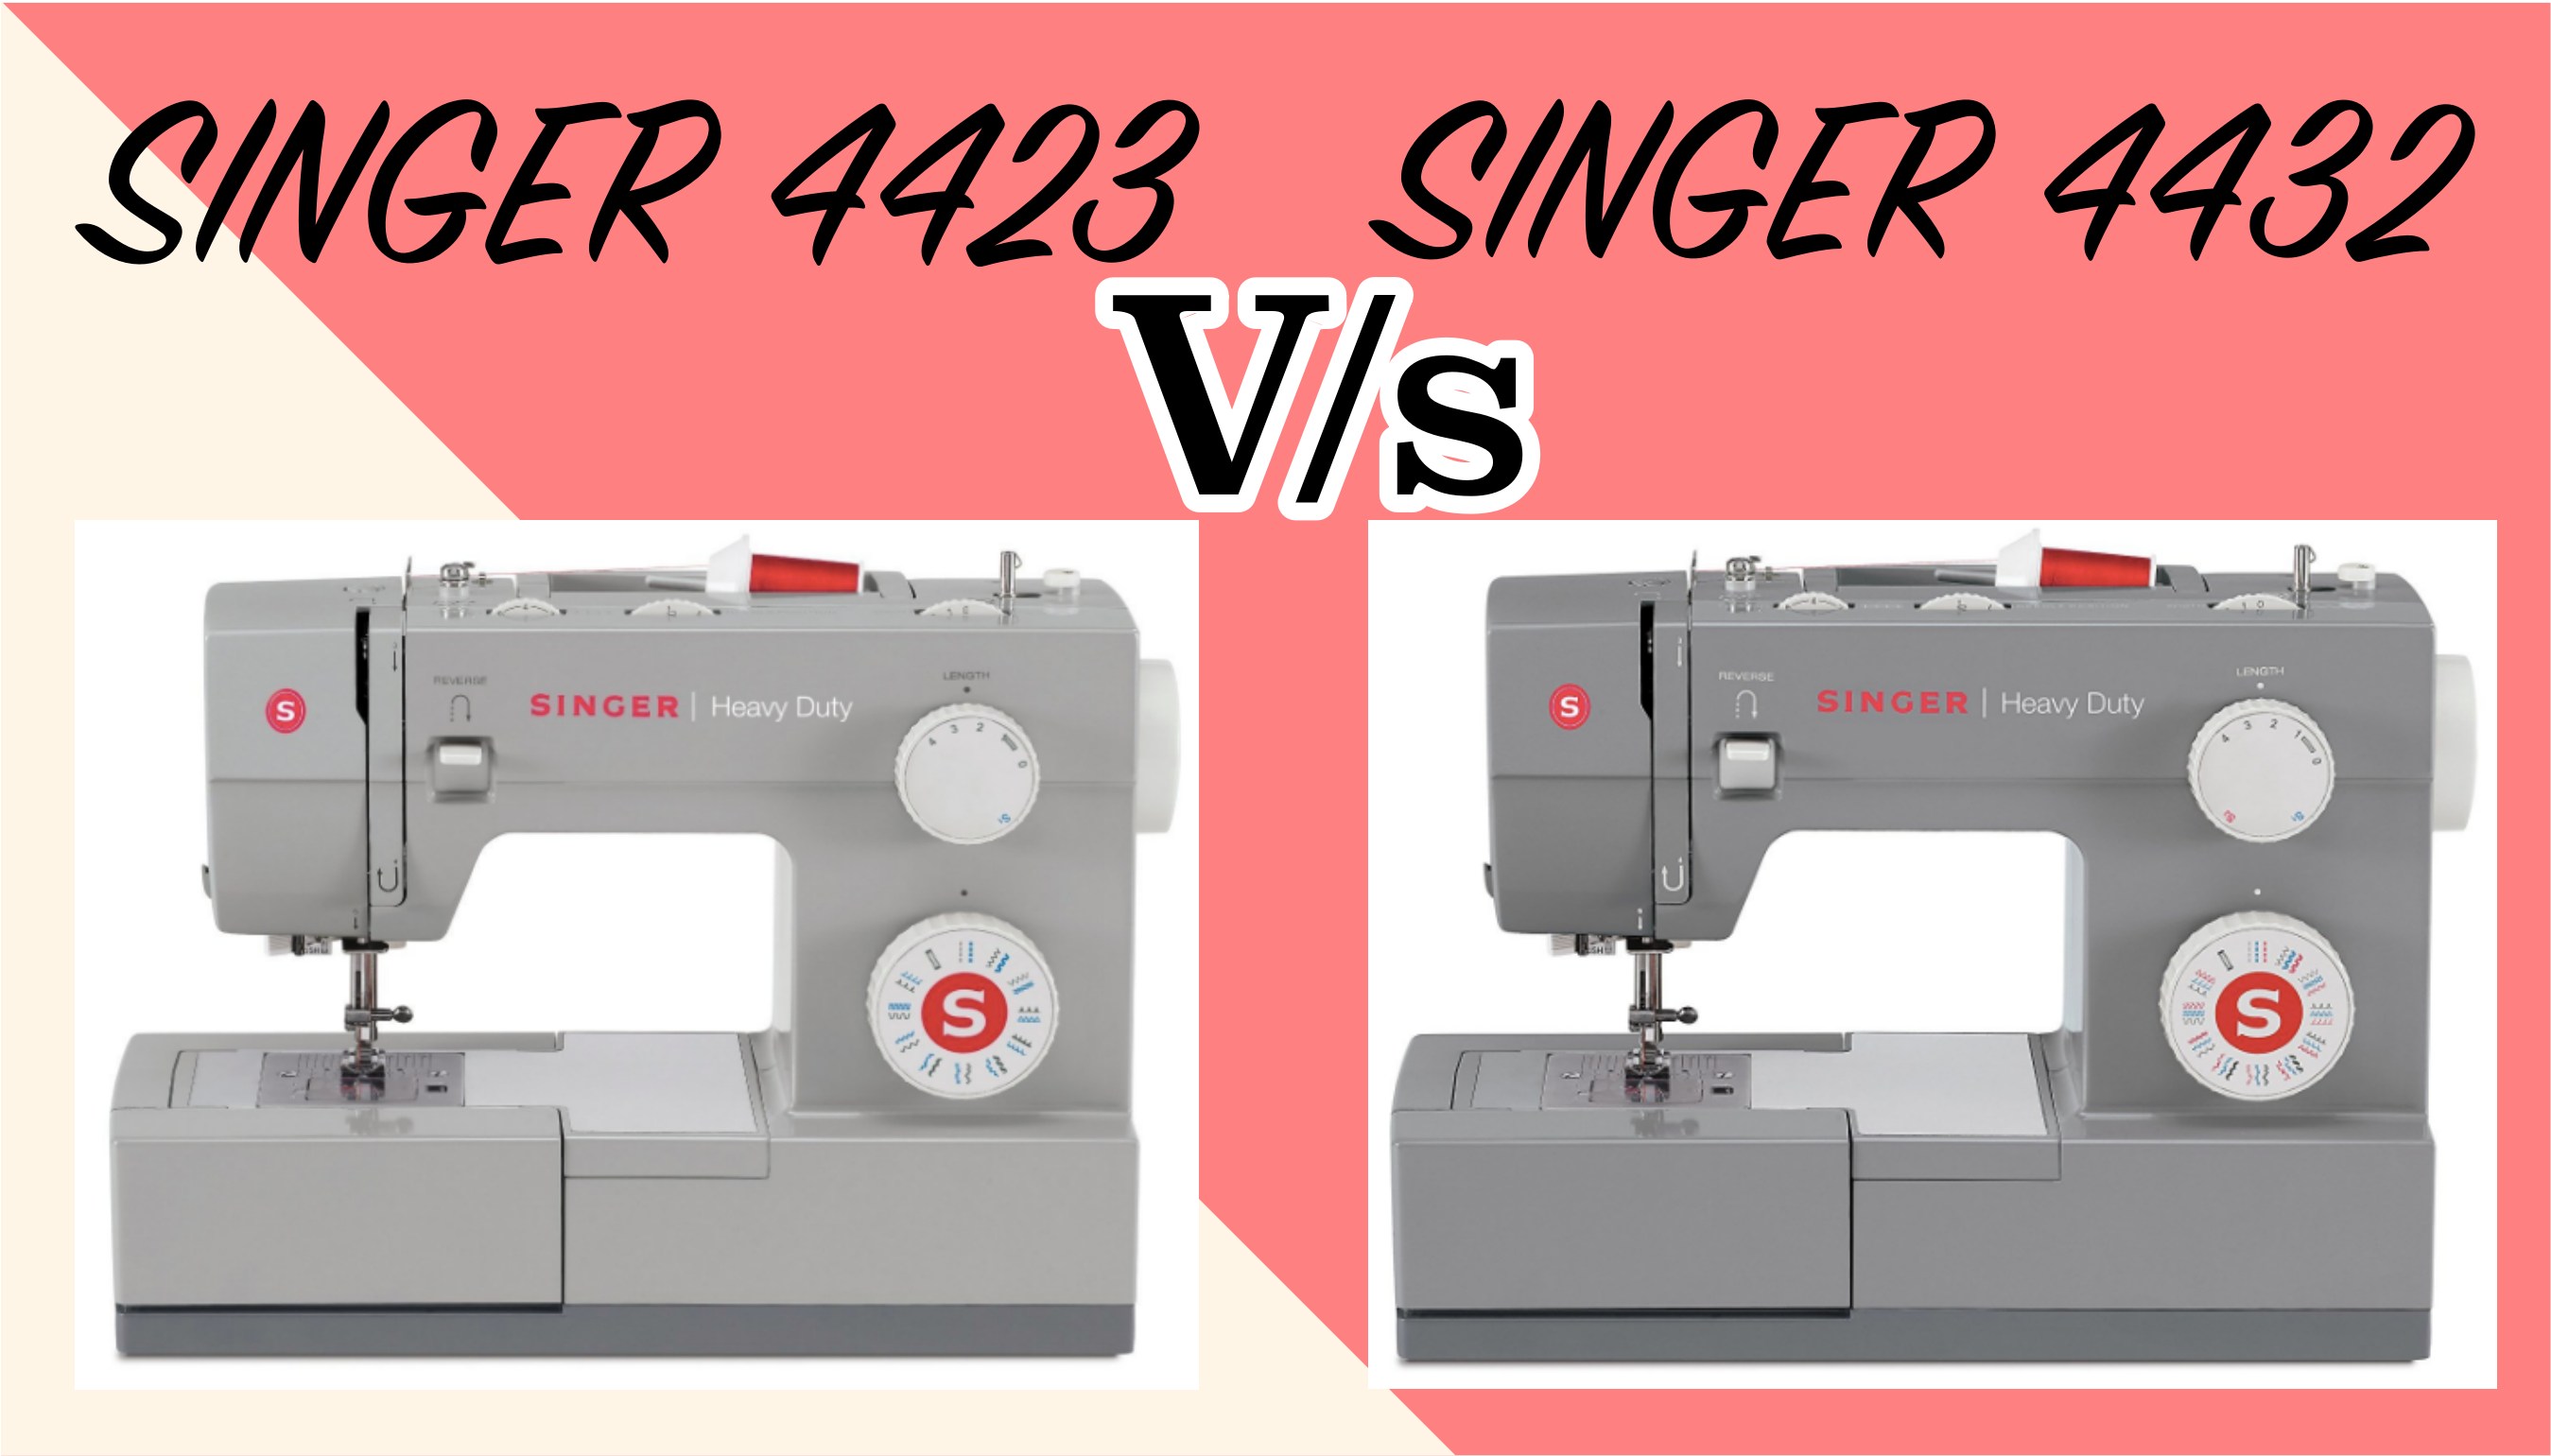 Singer 4423 Vs 4432: Detailed Comparison | Best Sewing Machines for Beginners